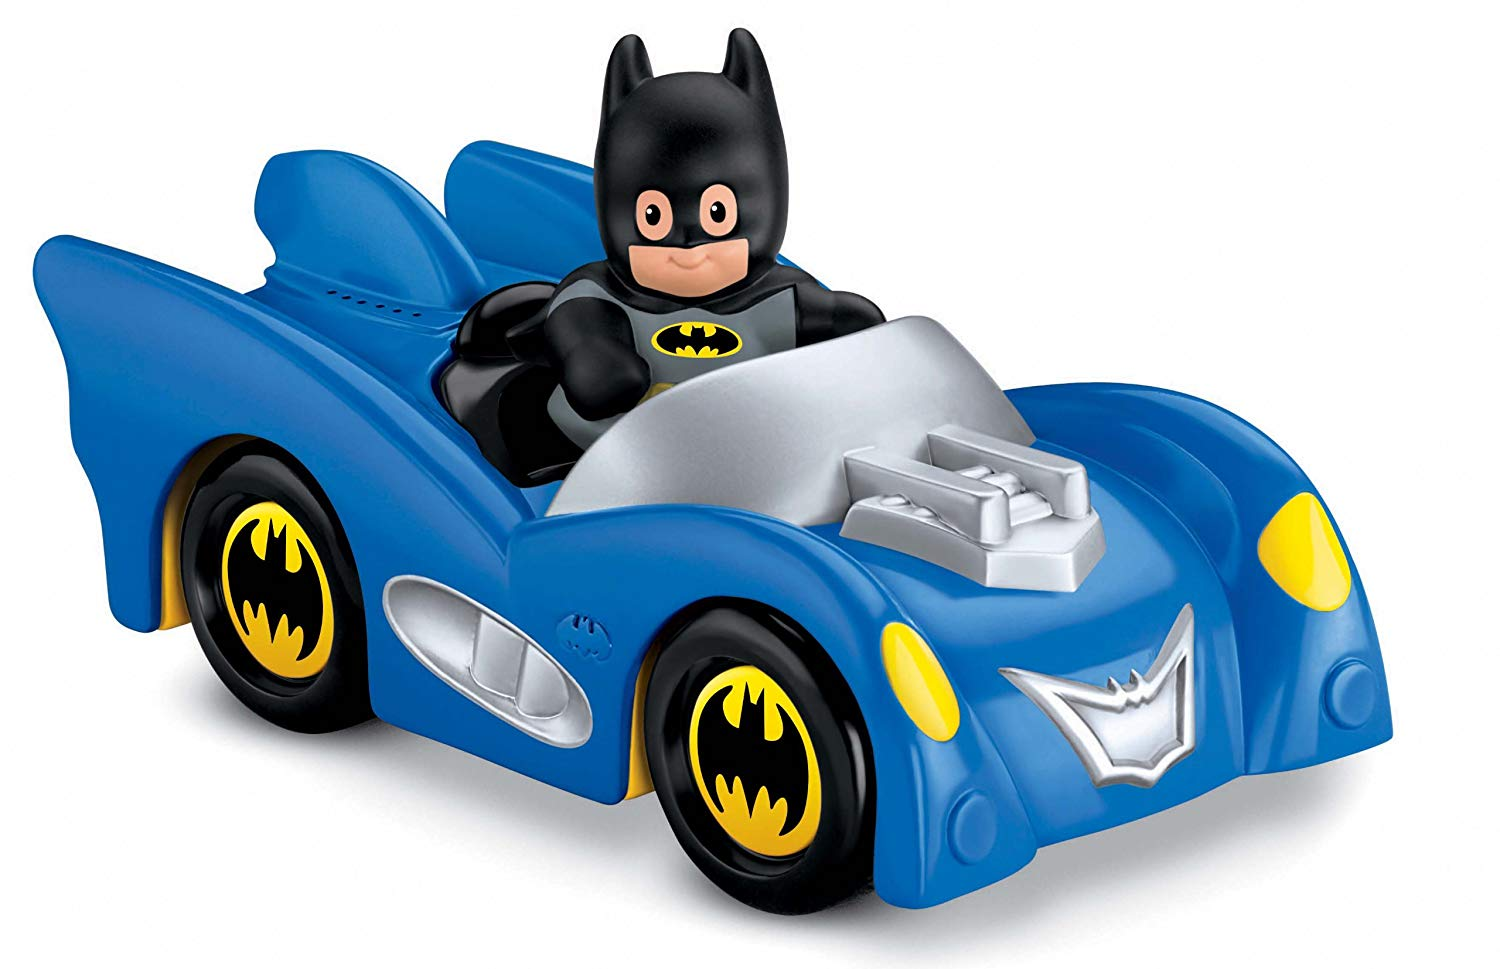 Dc super friend batmobile. Car clipart superhero